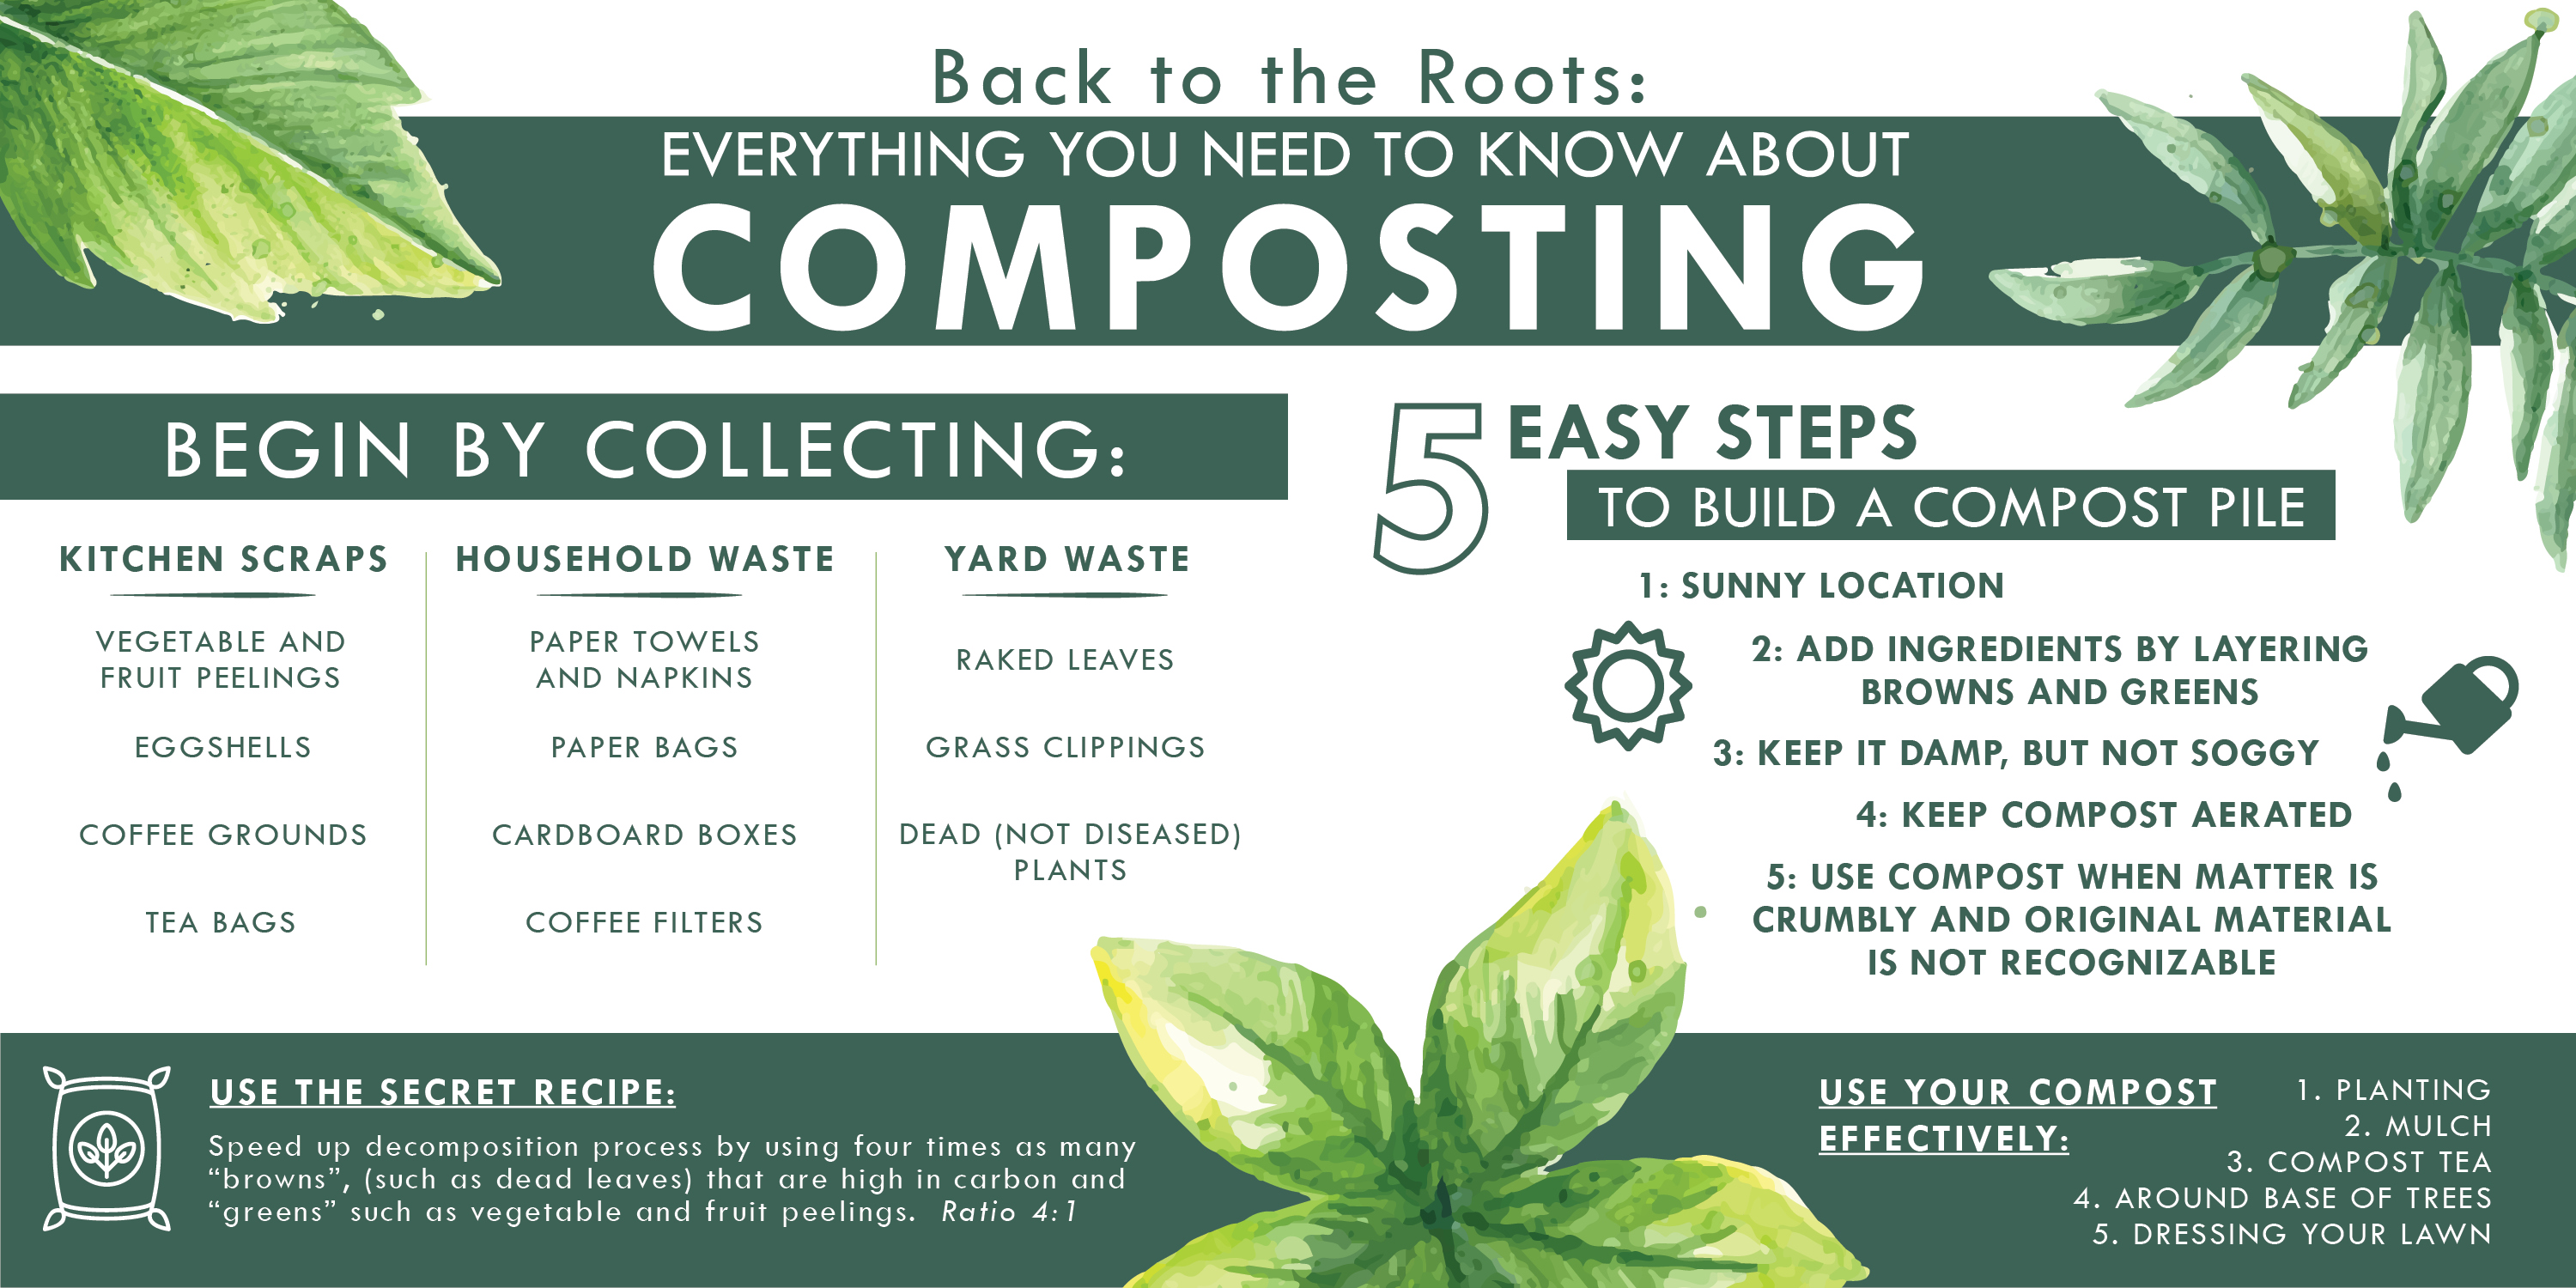 Everything You Need to Know About Composting